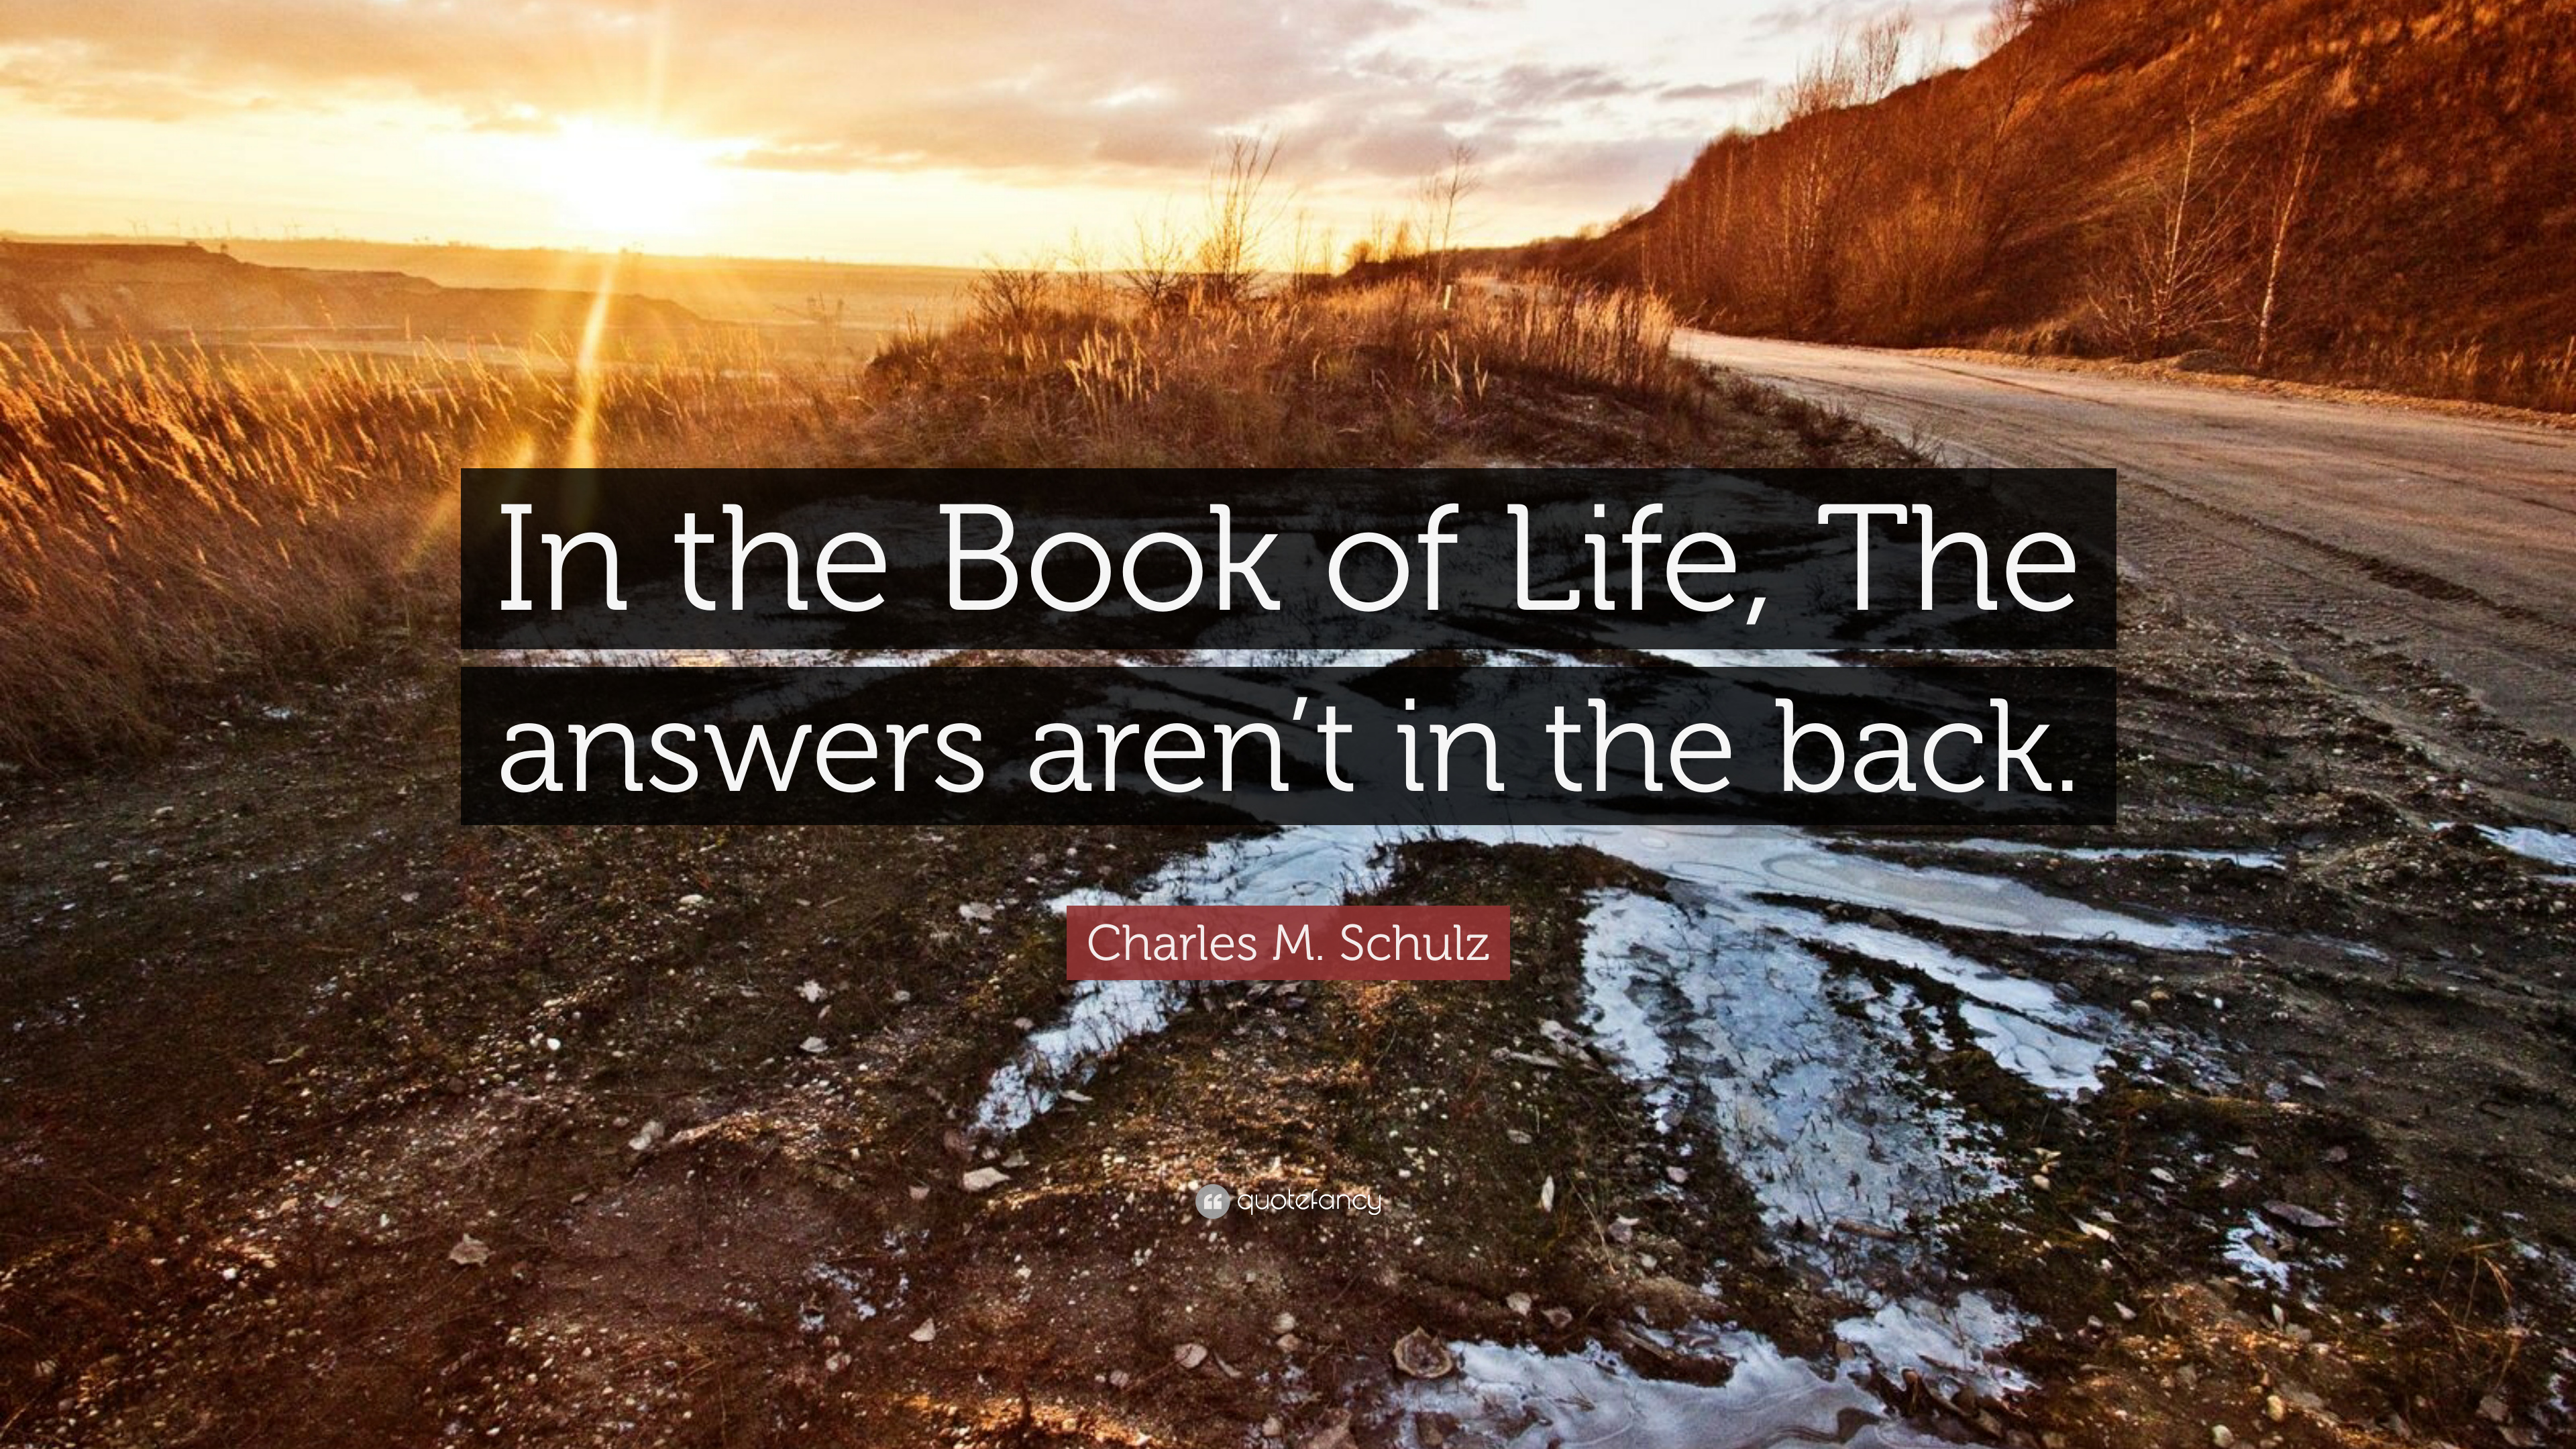 Charles M Schulz Quote In The Book Of Life The Answers Aren T